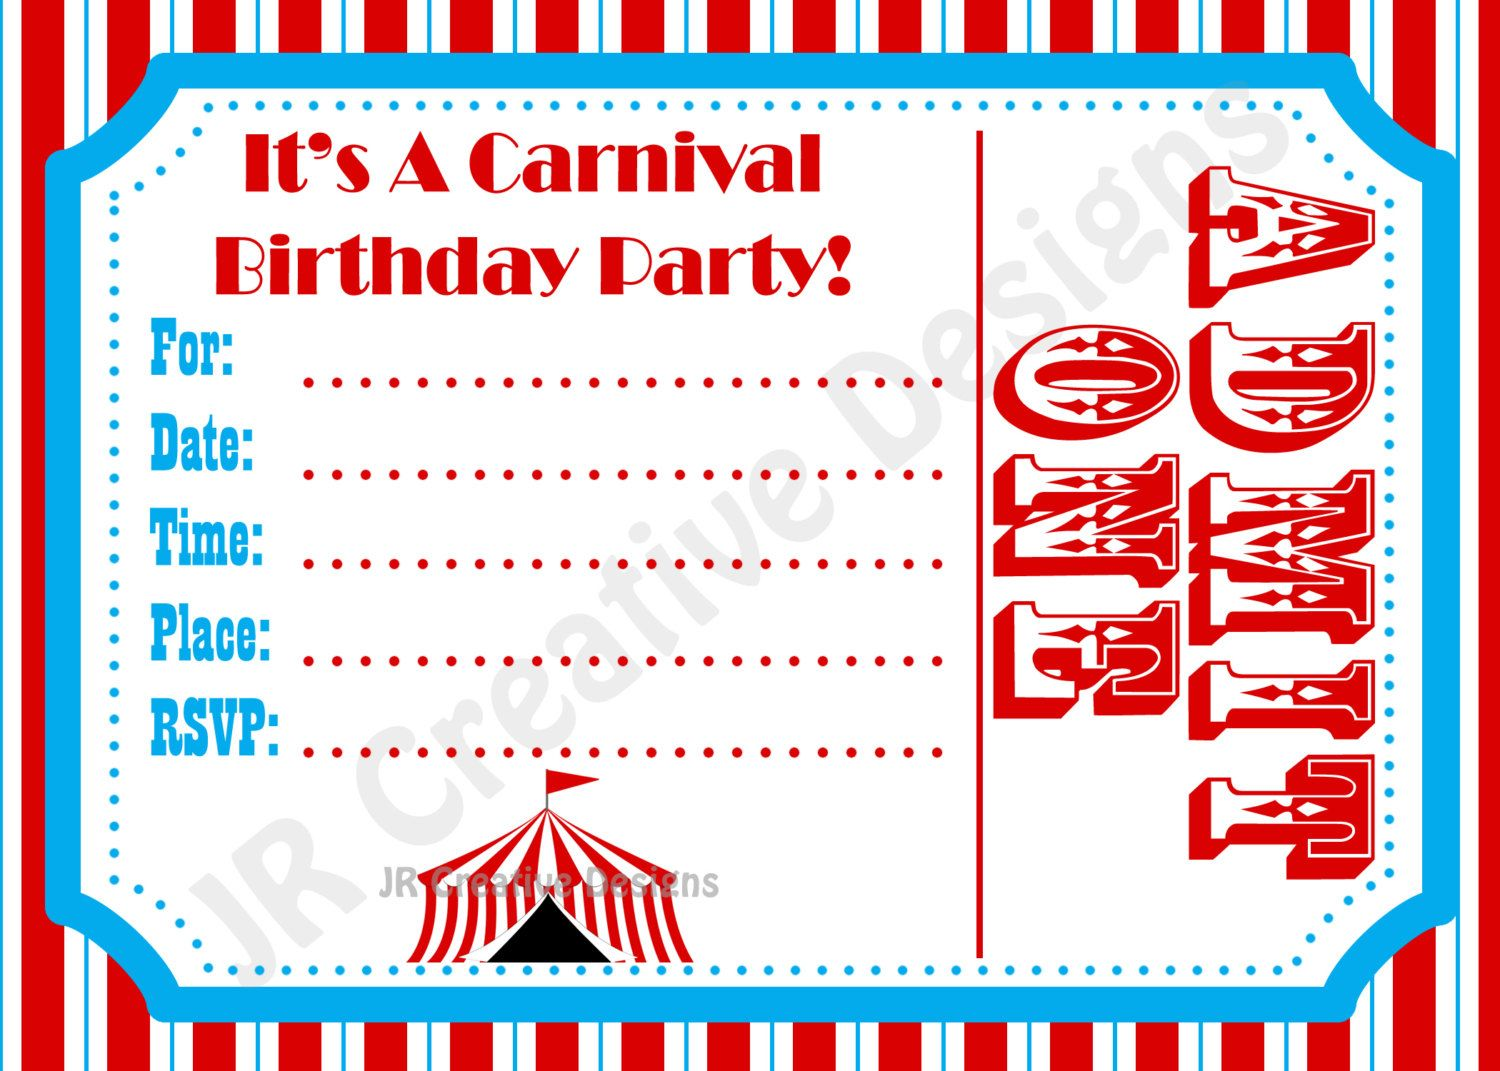 Pin by Jhanz Umali on Party | Pinterest | Party invitations kids ...